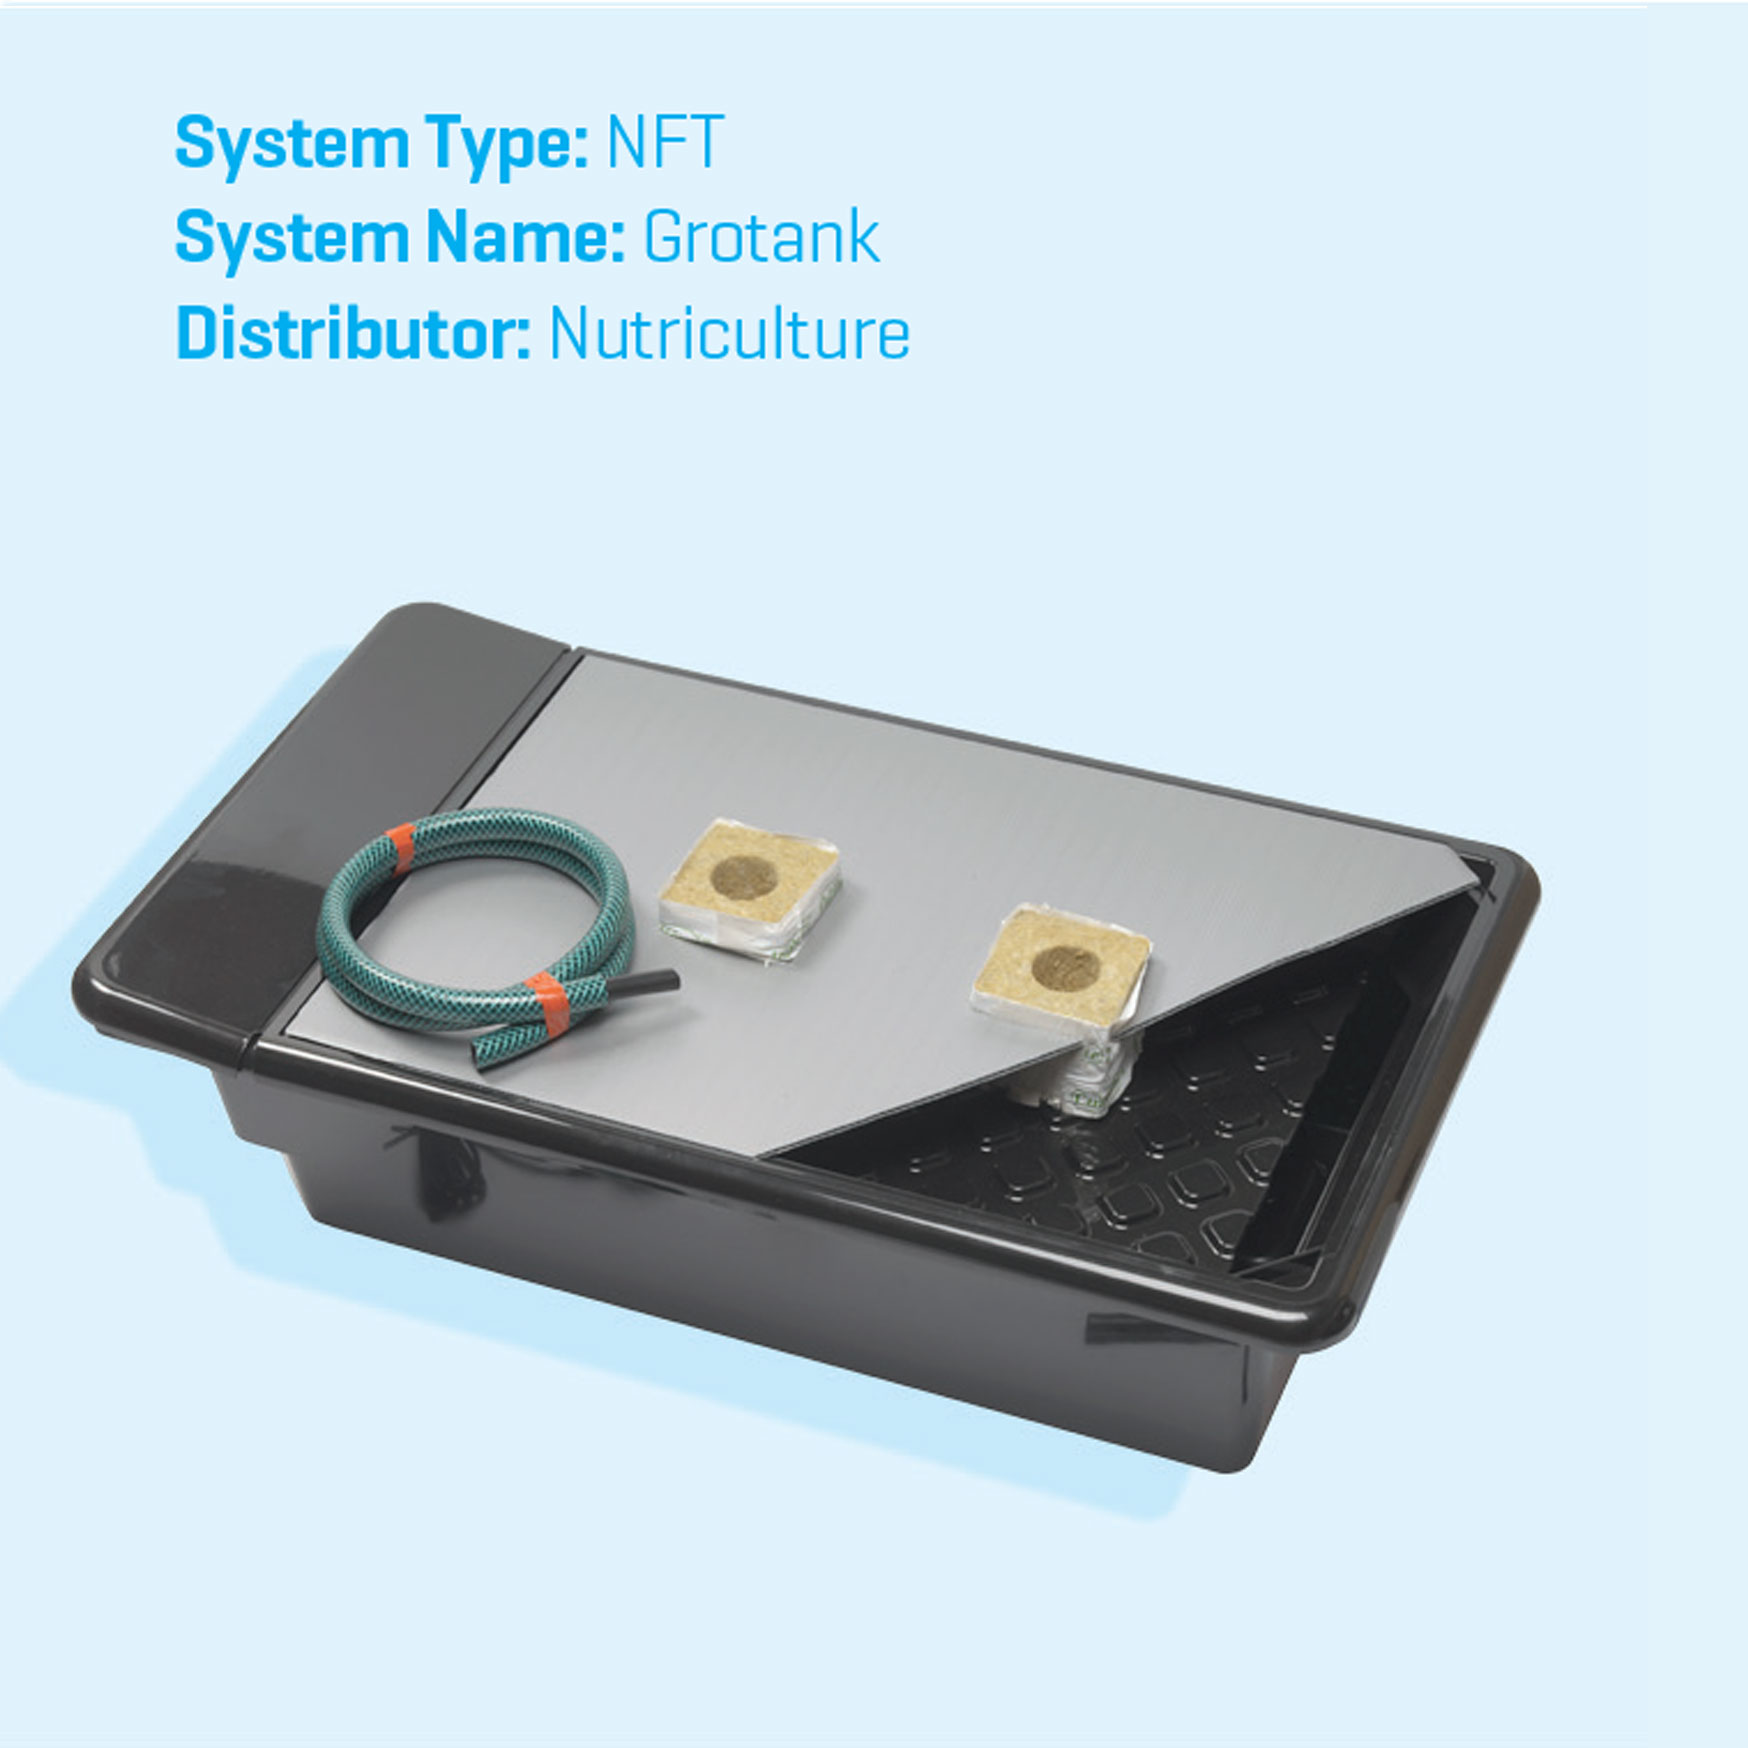 Grotank NFT (Nutrient Film technique) hydroponics systems